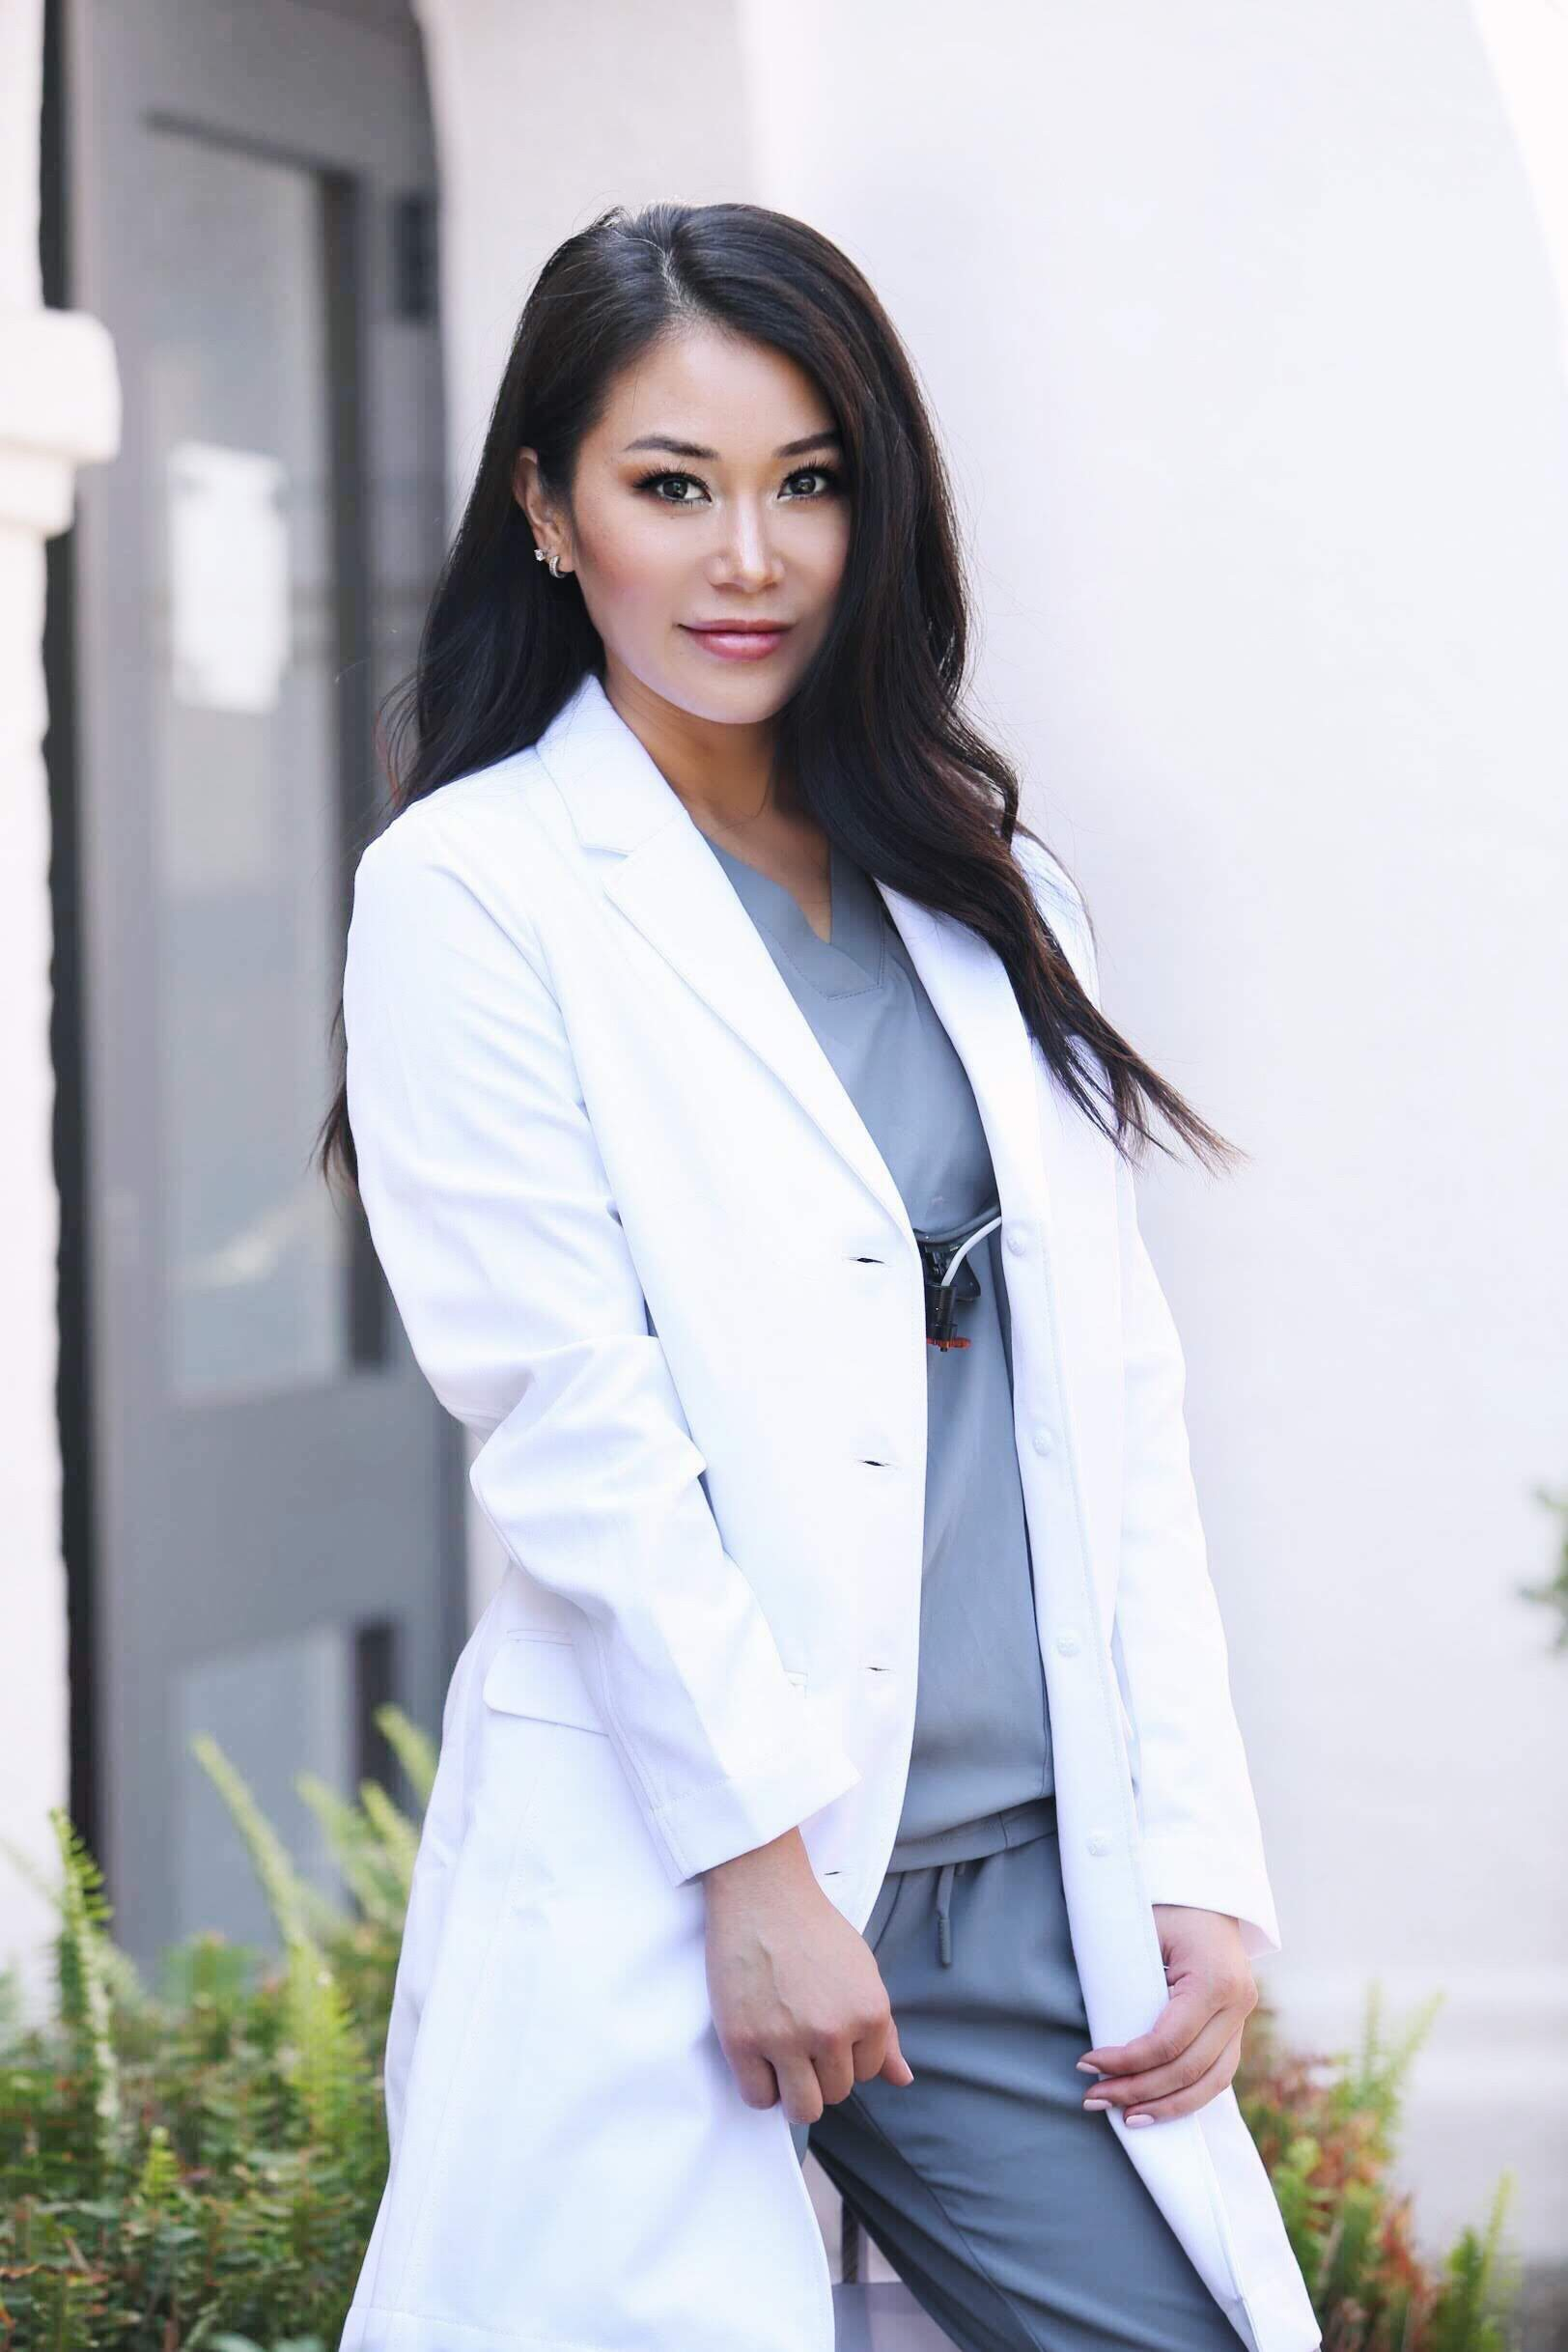 """ABOUT JOYCE - Dr. Joyce Kahng is the owner of Orange + Magnolia Dental Studio located in Costa Mesa, CA, and is an Assistant Clinical Professor at USC's Herman Ostrow School of Dentistry.She is active on Social Media, primarily Instagram as her persona, @joycethedentist. Her passion is sharing """"all things dental"""" in a way that is easy for the general public to consume ."""